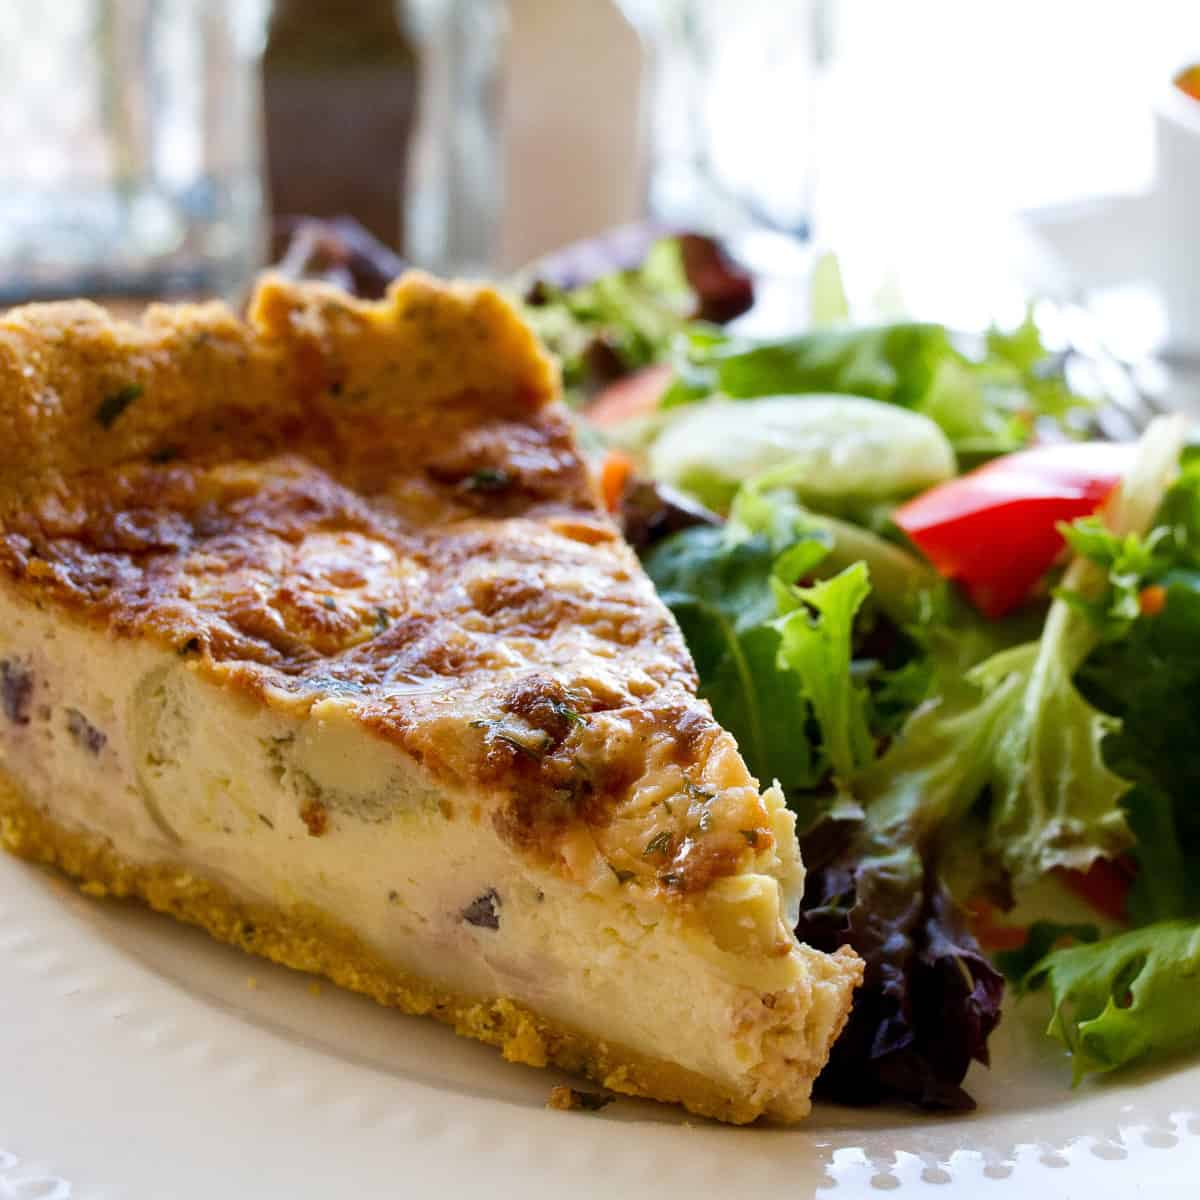 Quiche with salad